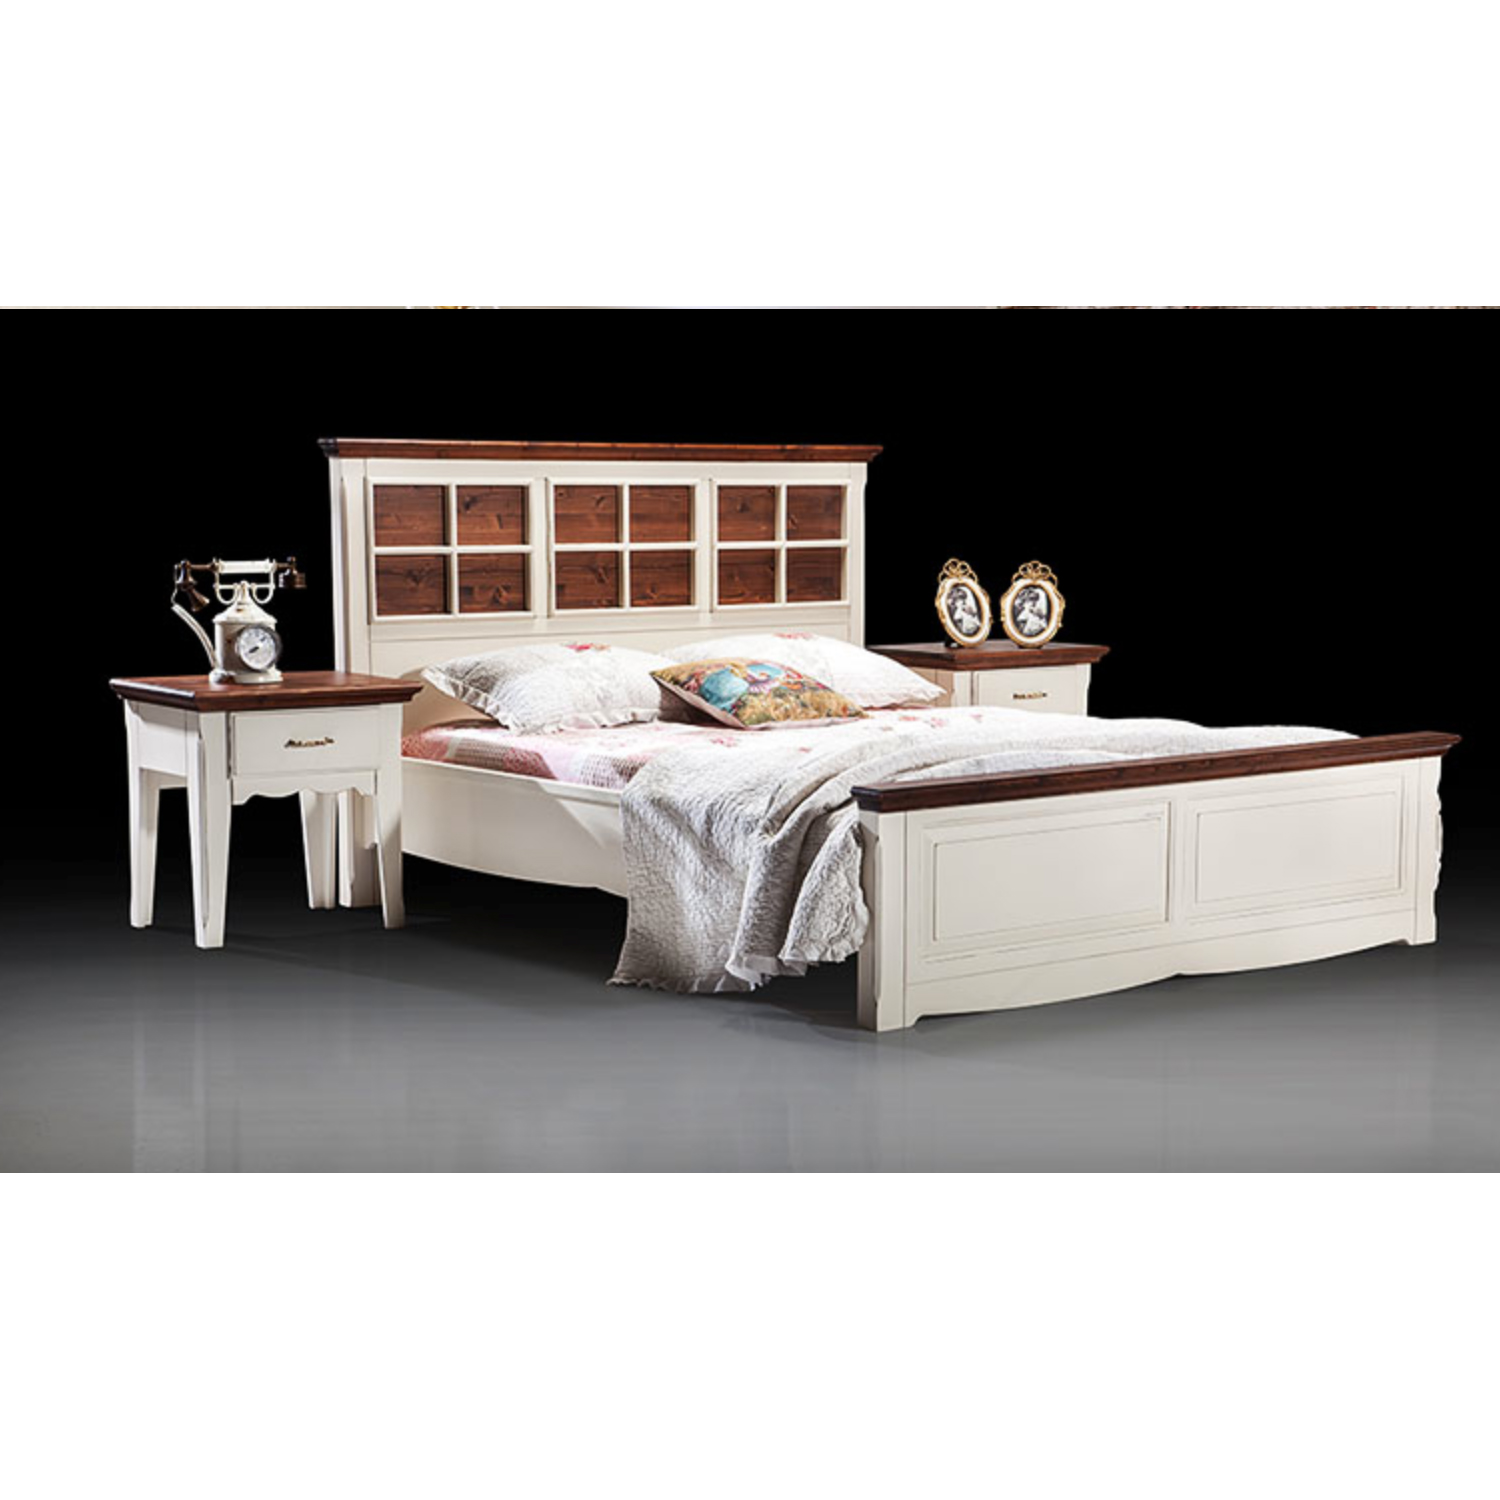 Lara Country bedroom Blend Furniture